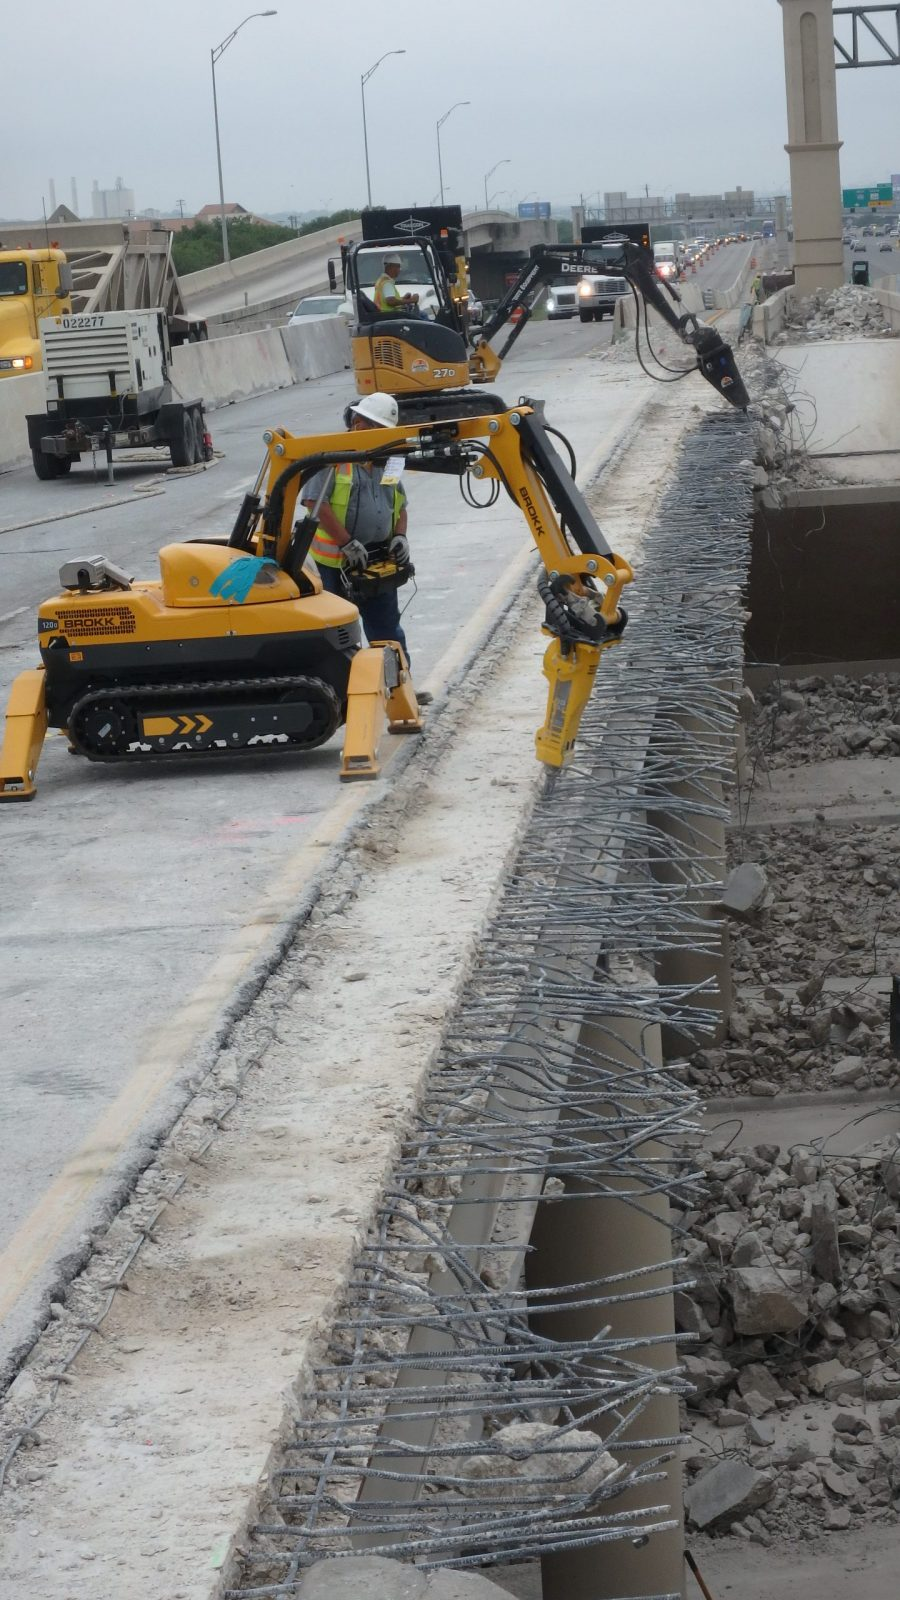 The Brokk 120D allowed JR RAMON to complete the inner section twice as fast as on the outer section while leaving the rebar undamaged. The new equipment also reduced the contractor's labor costs by 90% on the inner section.